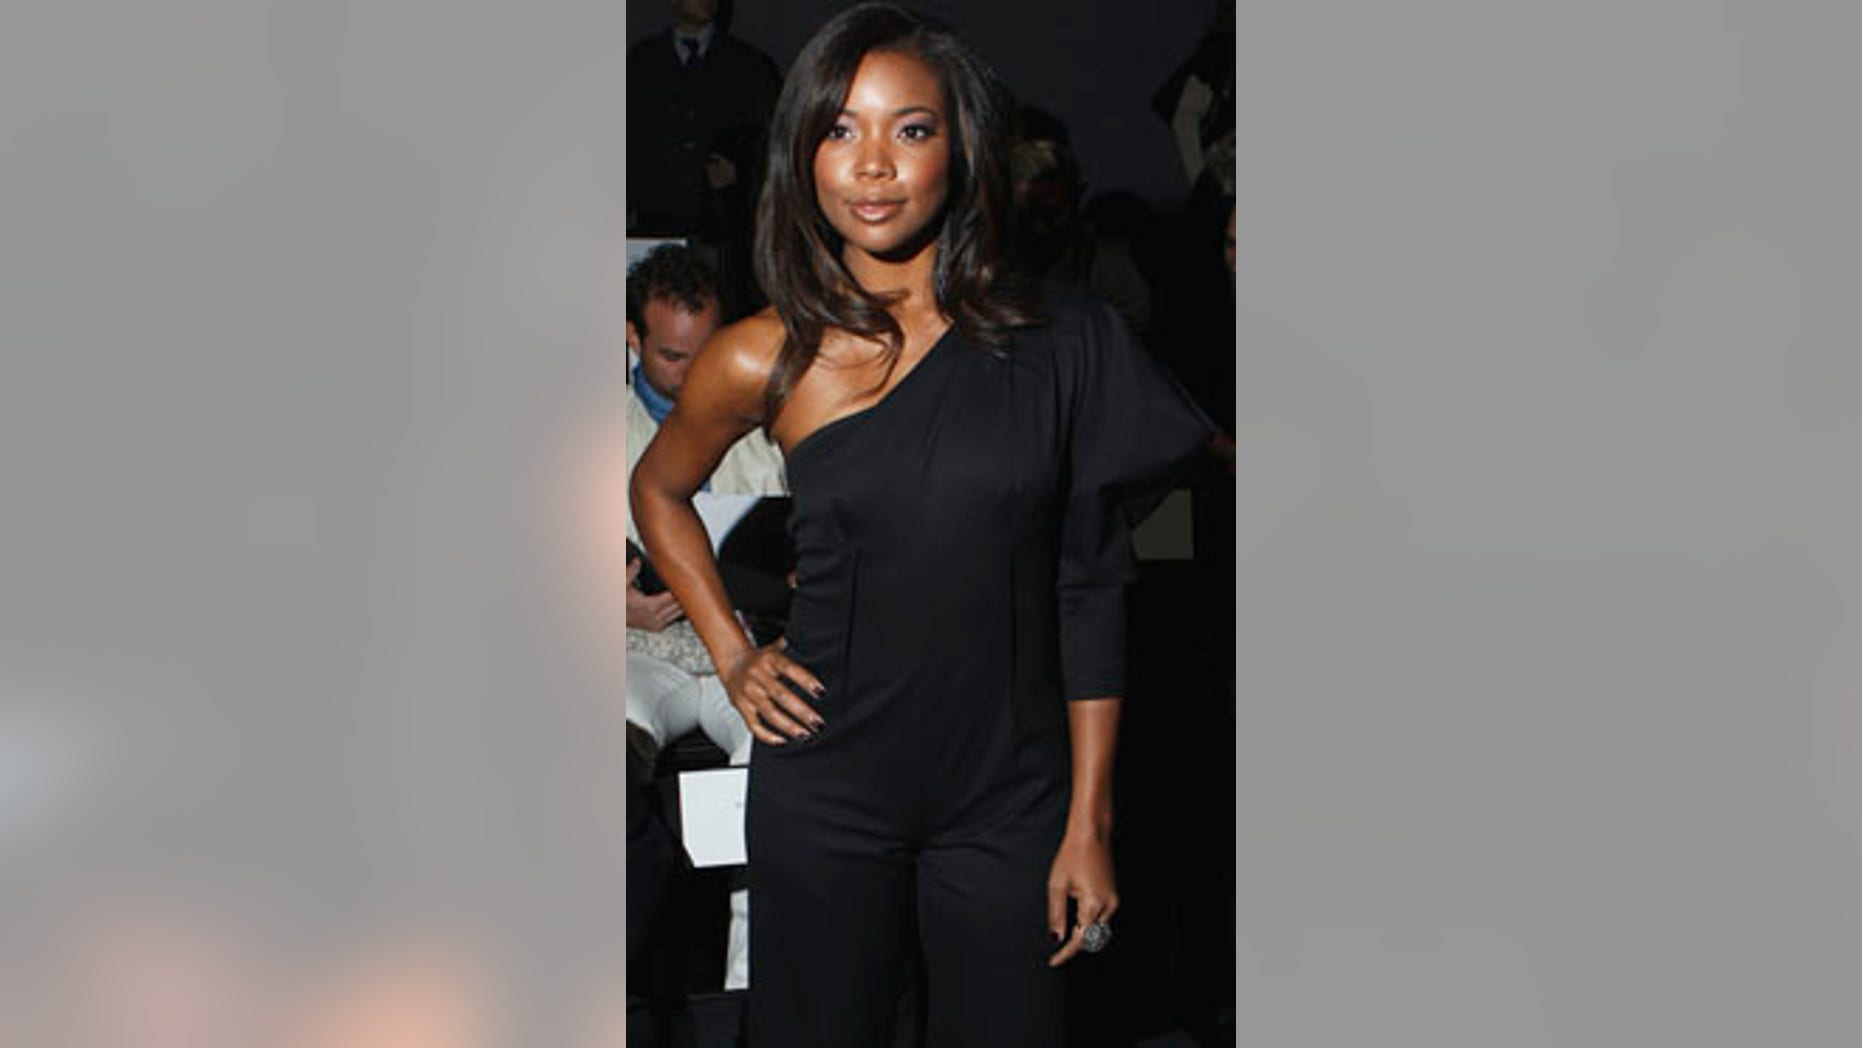 Actress Gabrielle Union poses before a showing of the Nicole Miller Fall/Winter 2011 collection during New York Fashion Week February 11, 2011.